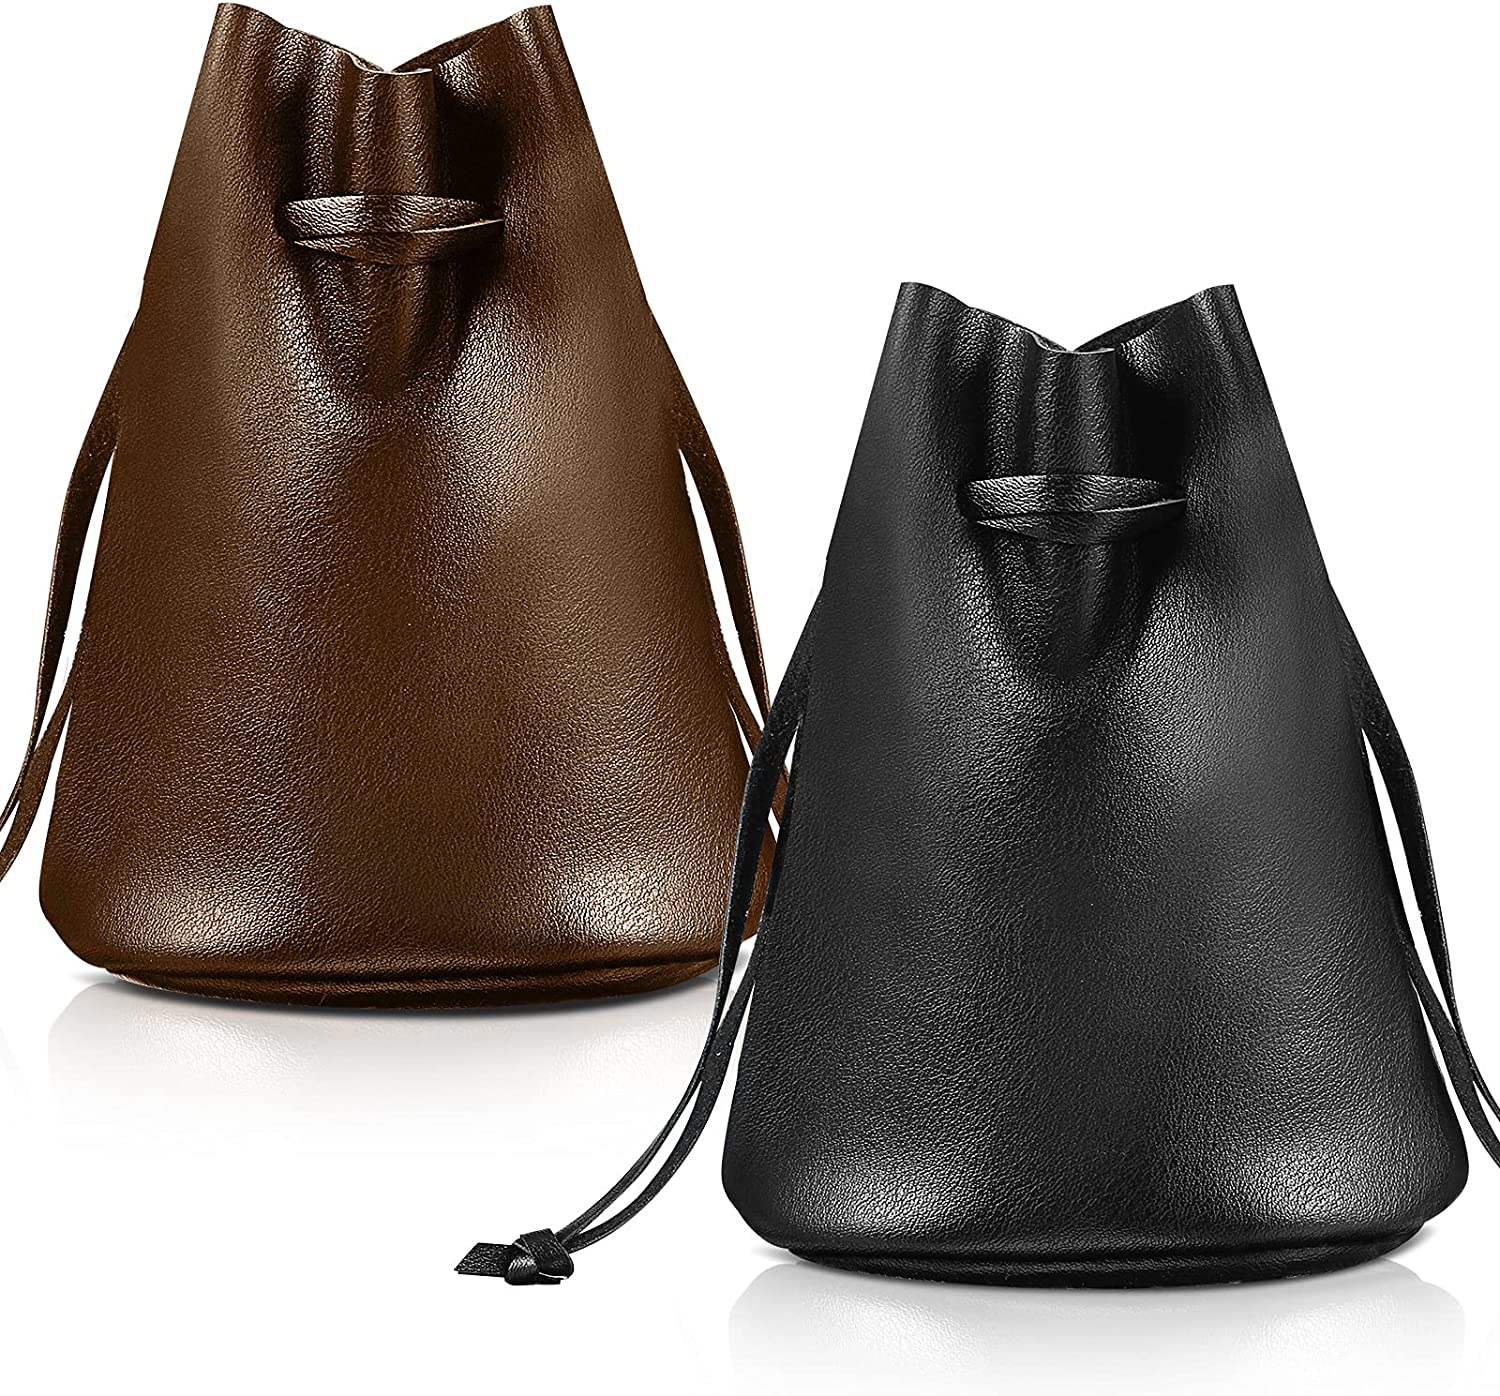 Artificial Leather Drawstring Pouch, Coin Bag, Medicine Pouch, Cellphone Case Cover Pouch, Wallet Hand Purse, Carry Gadget Bag, Christmas Present Bag, Halloween Costume Bag